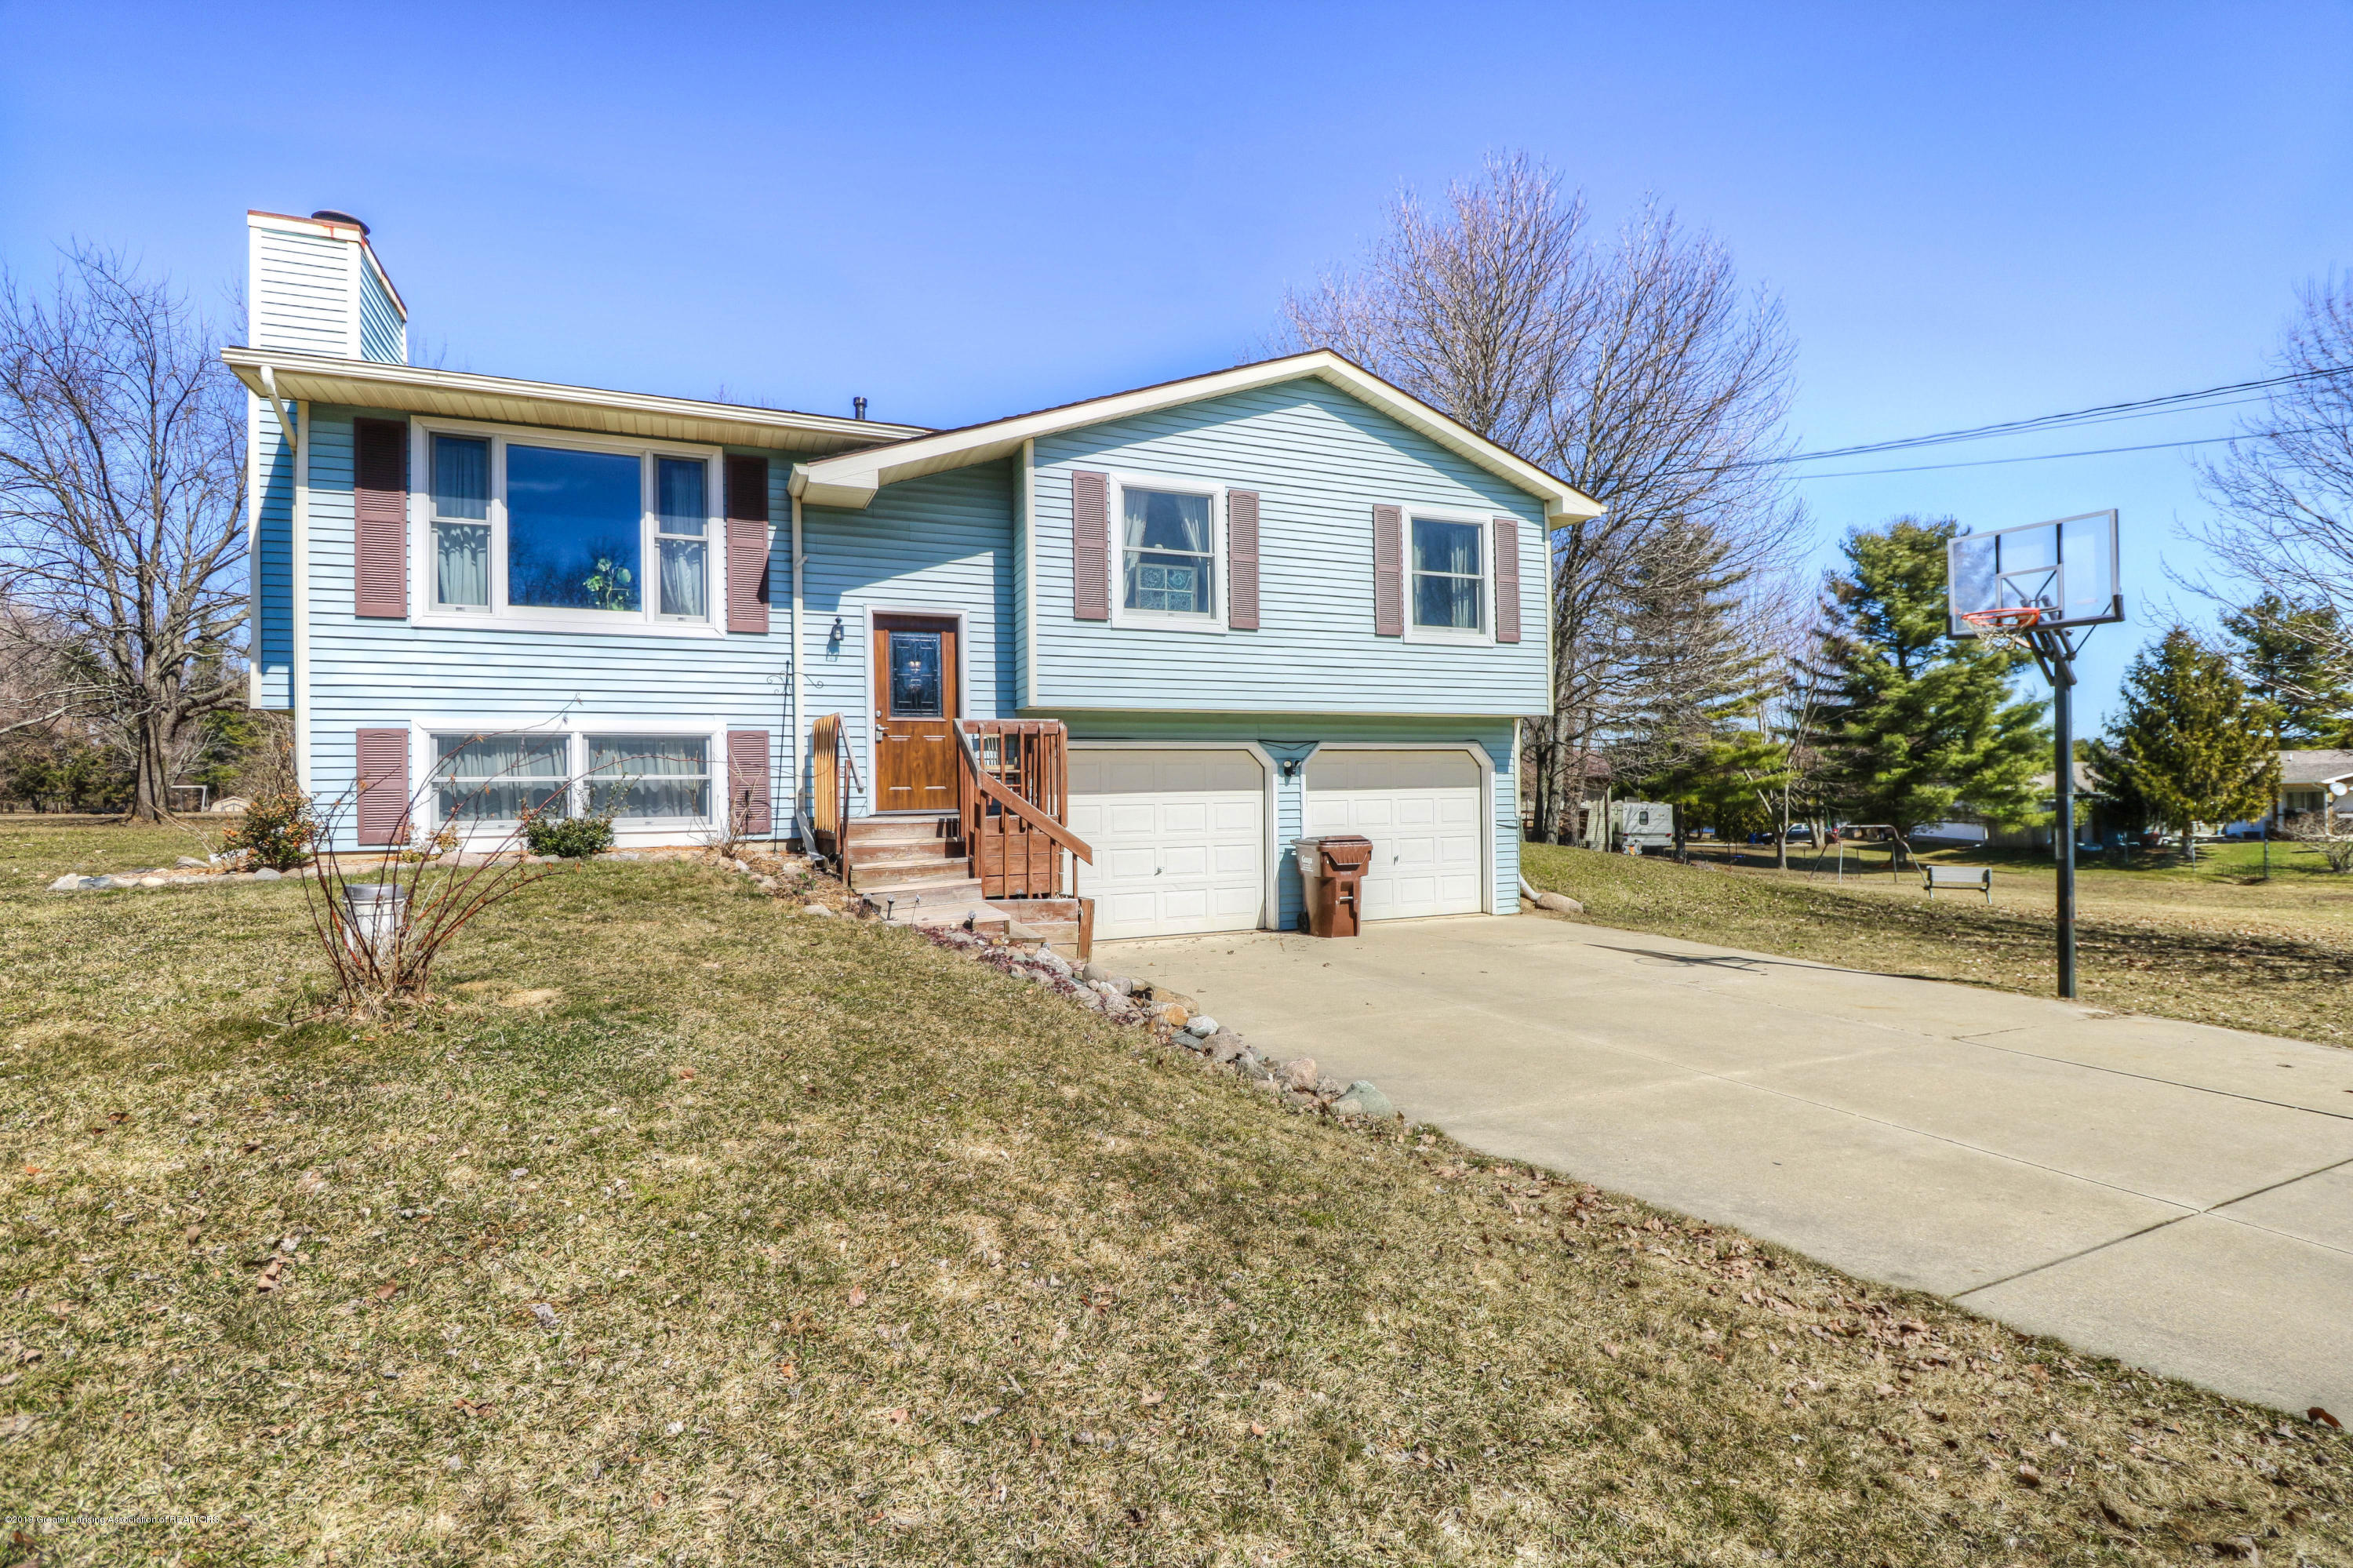 9261 Highland View Dr - 1 - 1